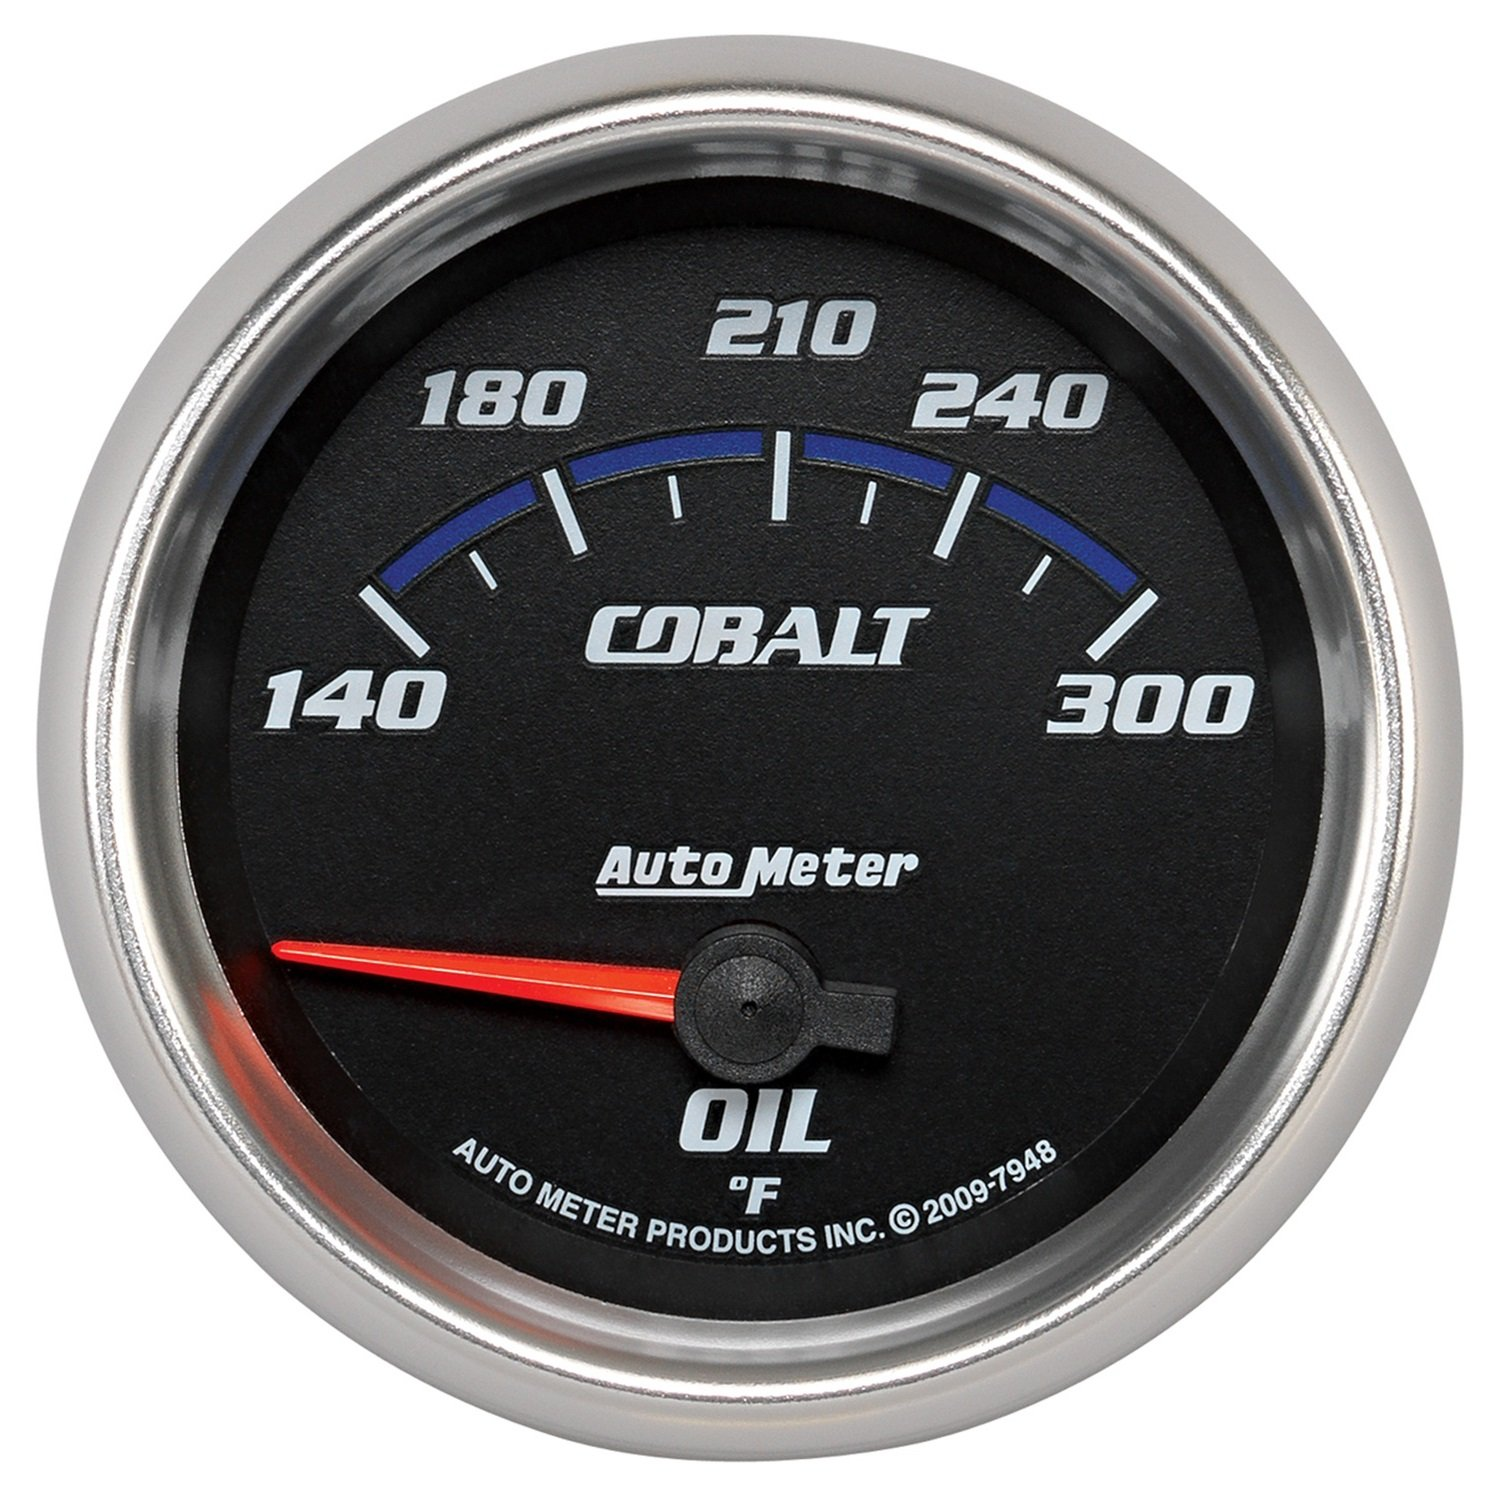 Auto Meter 7948 Cobalt 2-5/8 140-300 Degree F Short Sweep Electric Oil Temperature Gauge